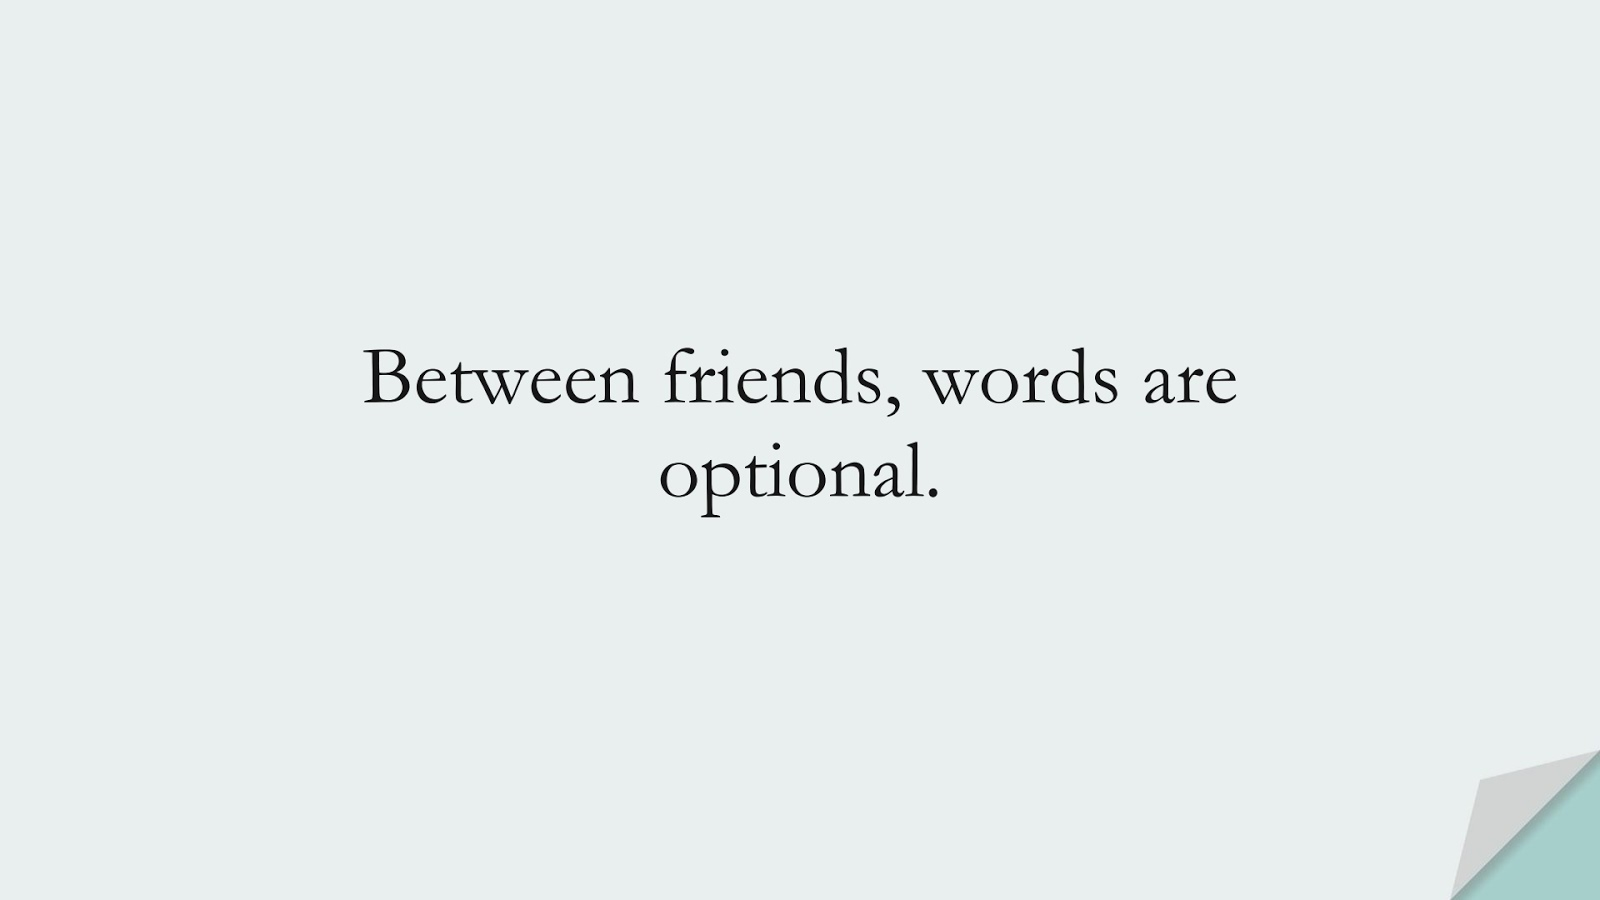 Between friends, words are optional.FALSE